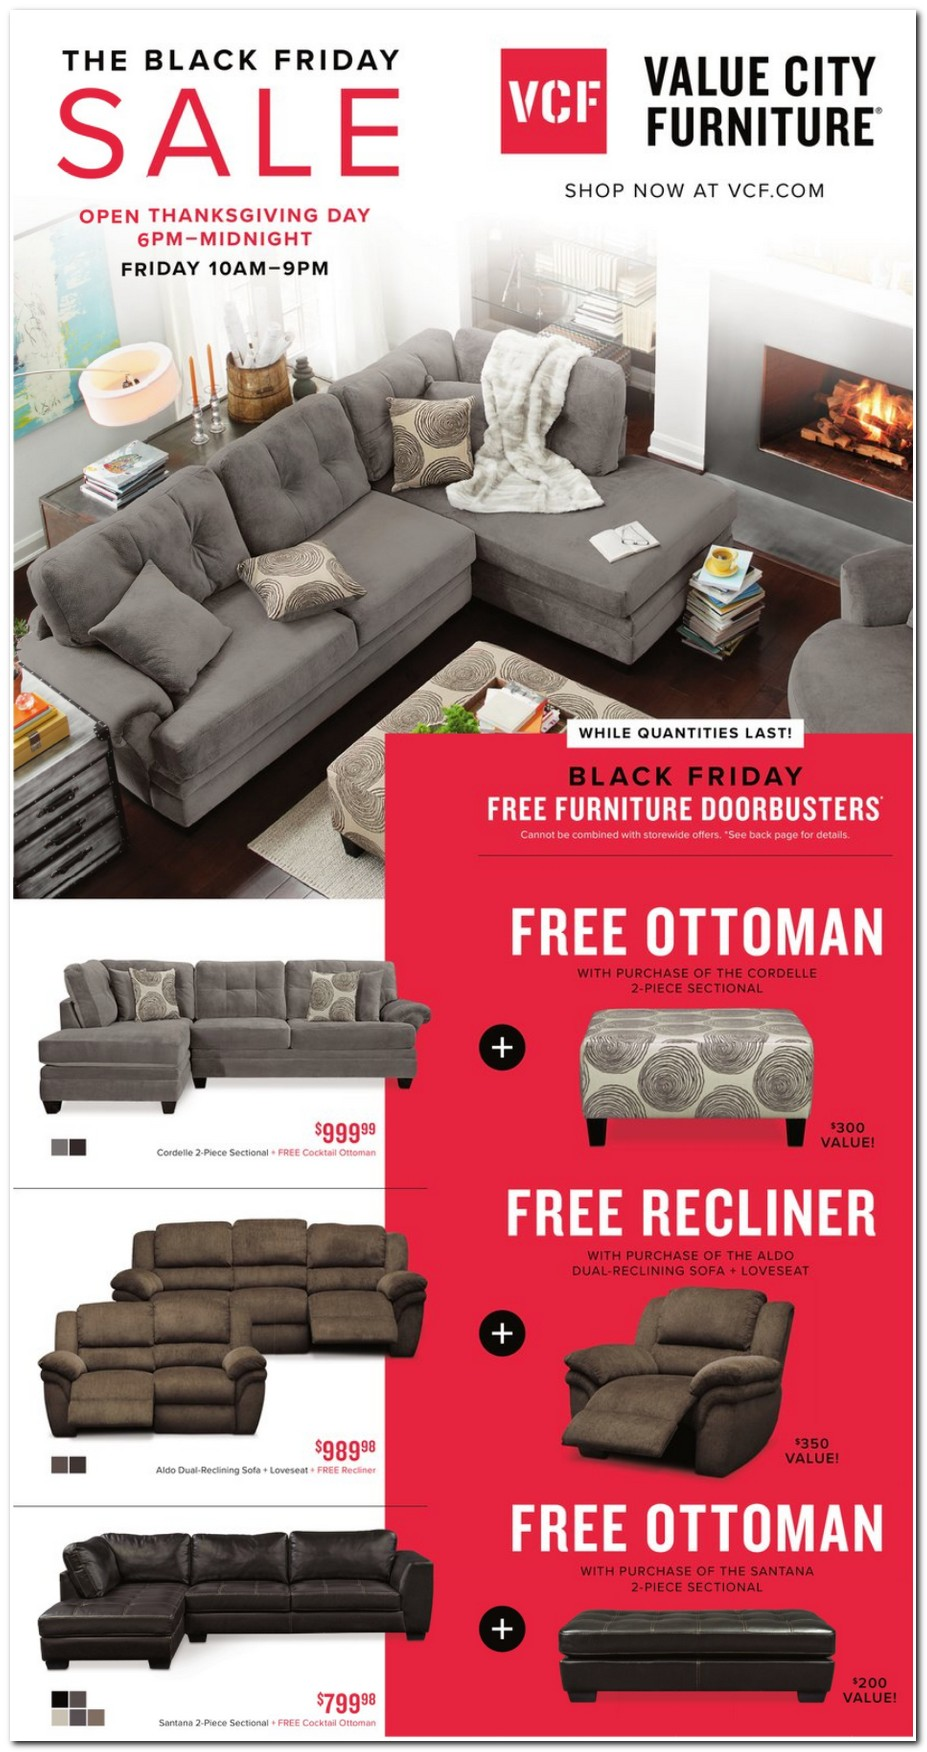 sectional sofa black friday 2017 how to remove mold from cushions value city furniture ad archive 1